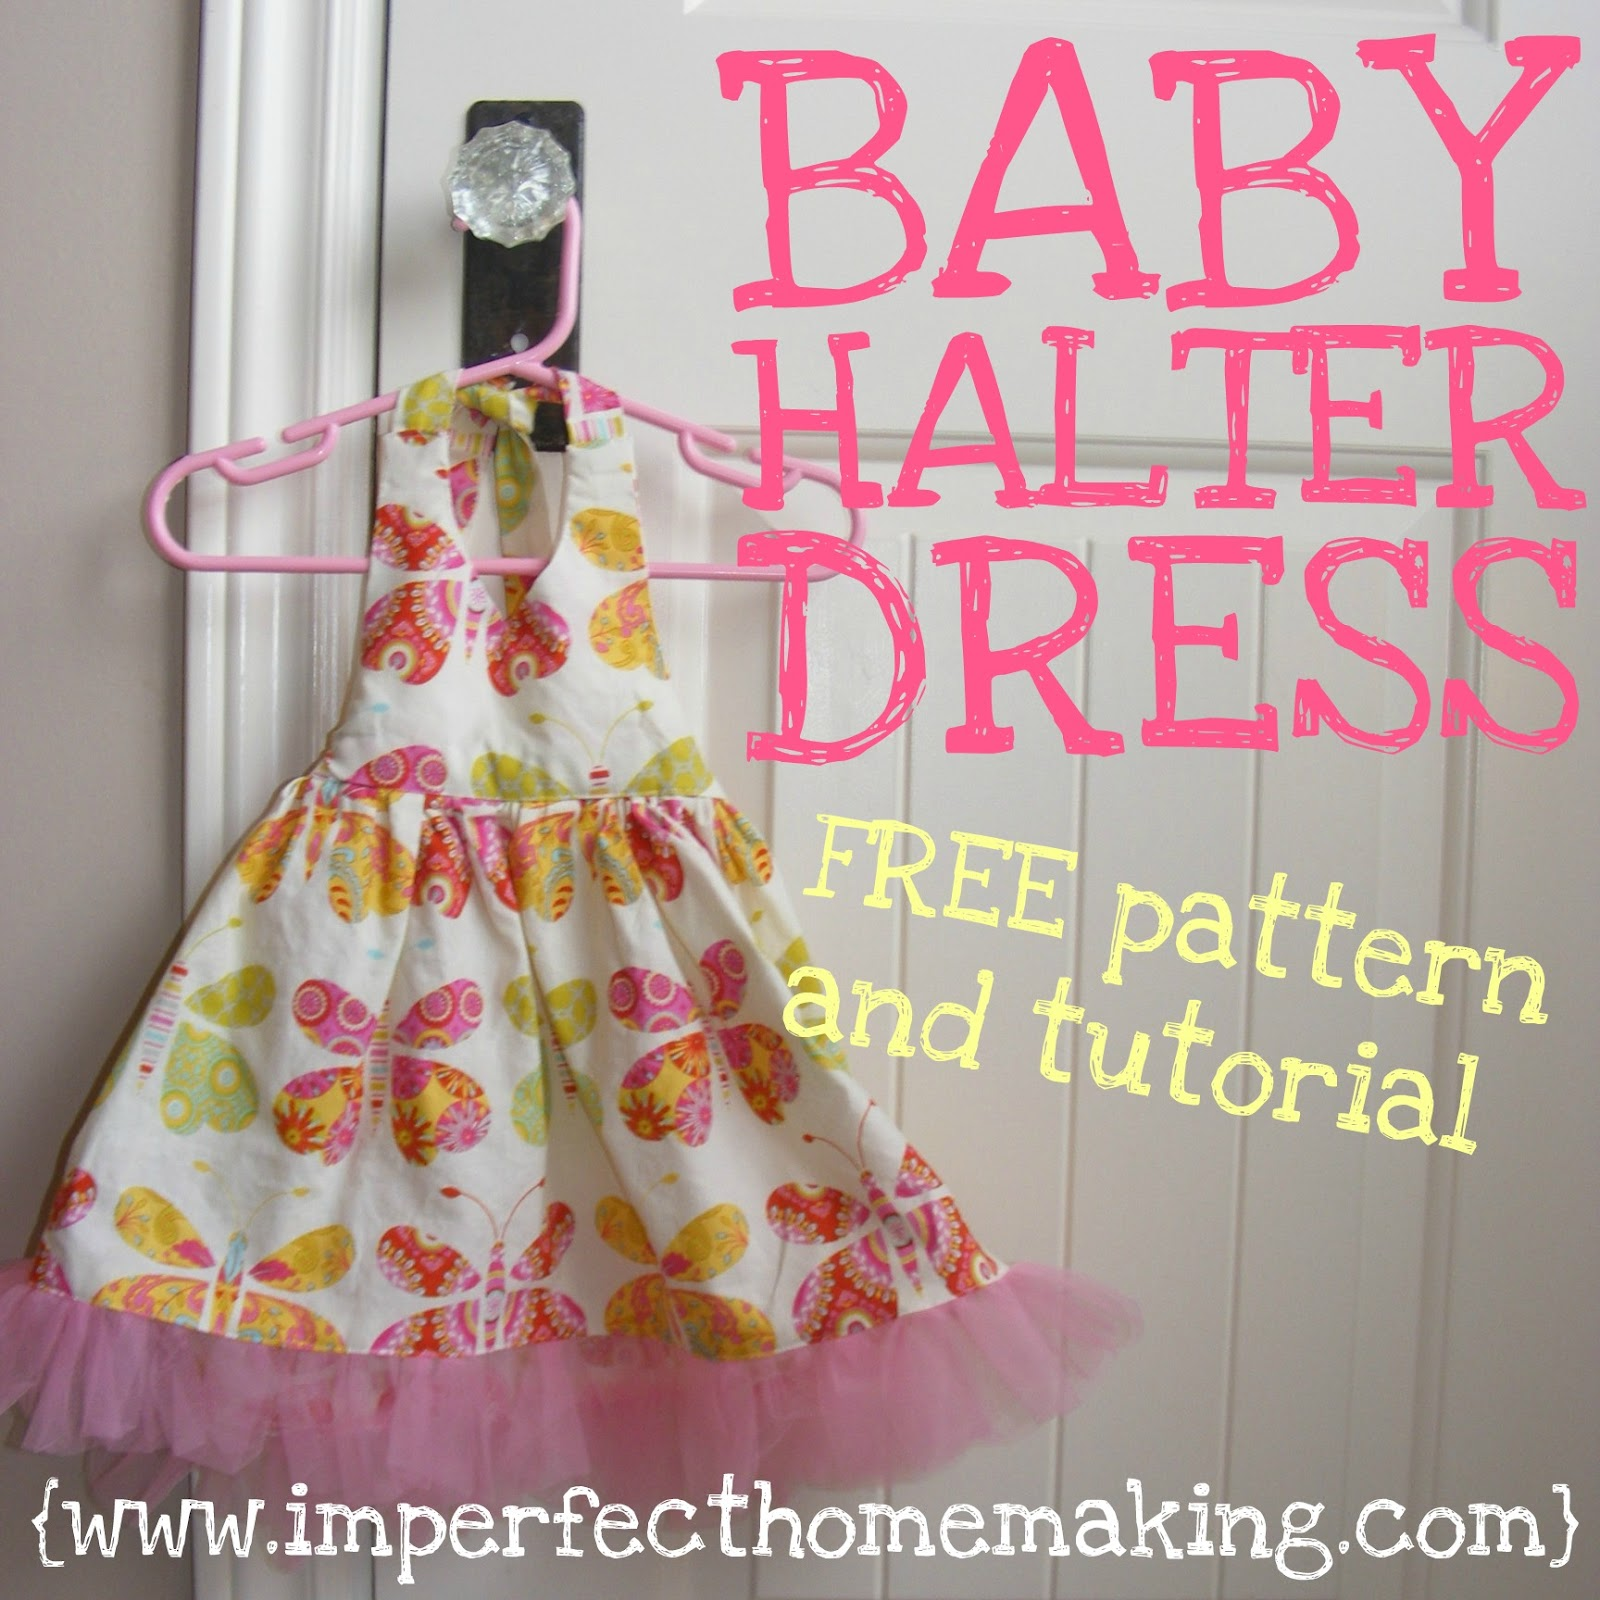 Baby Halter Dress {free pattern and tutorial} | The Complete Guide ...